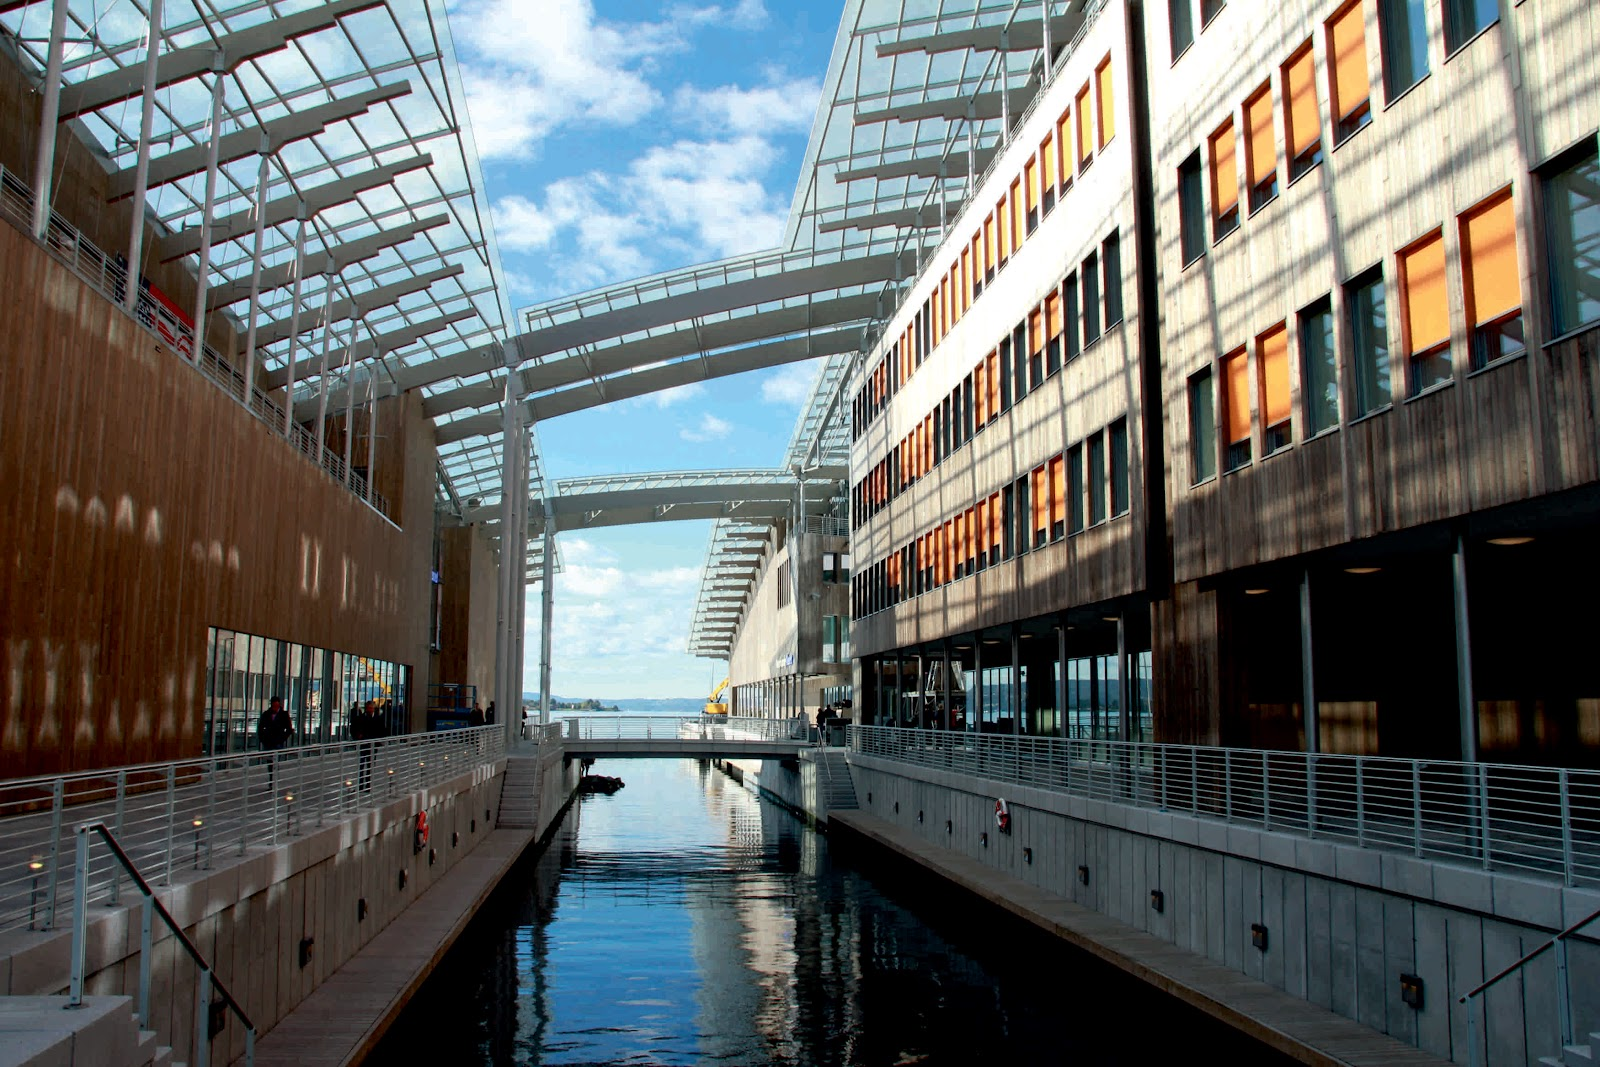 Opere Di Renzo Piano astrup fearnley museet by renzo piano – aasarchitecture